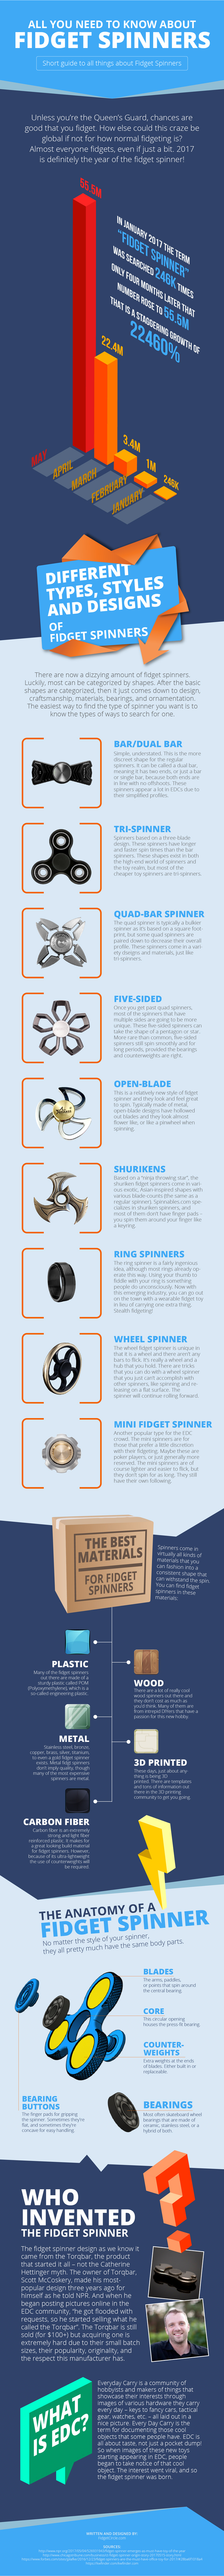 All-you-need-to-know-about-Fidget-Spinners